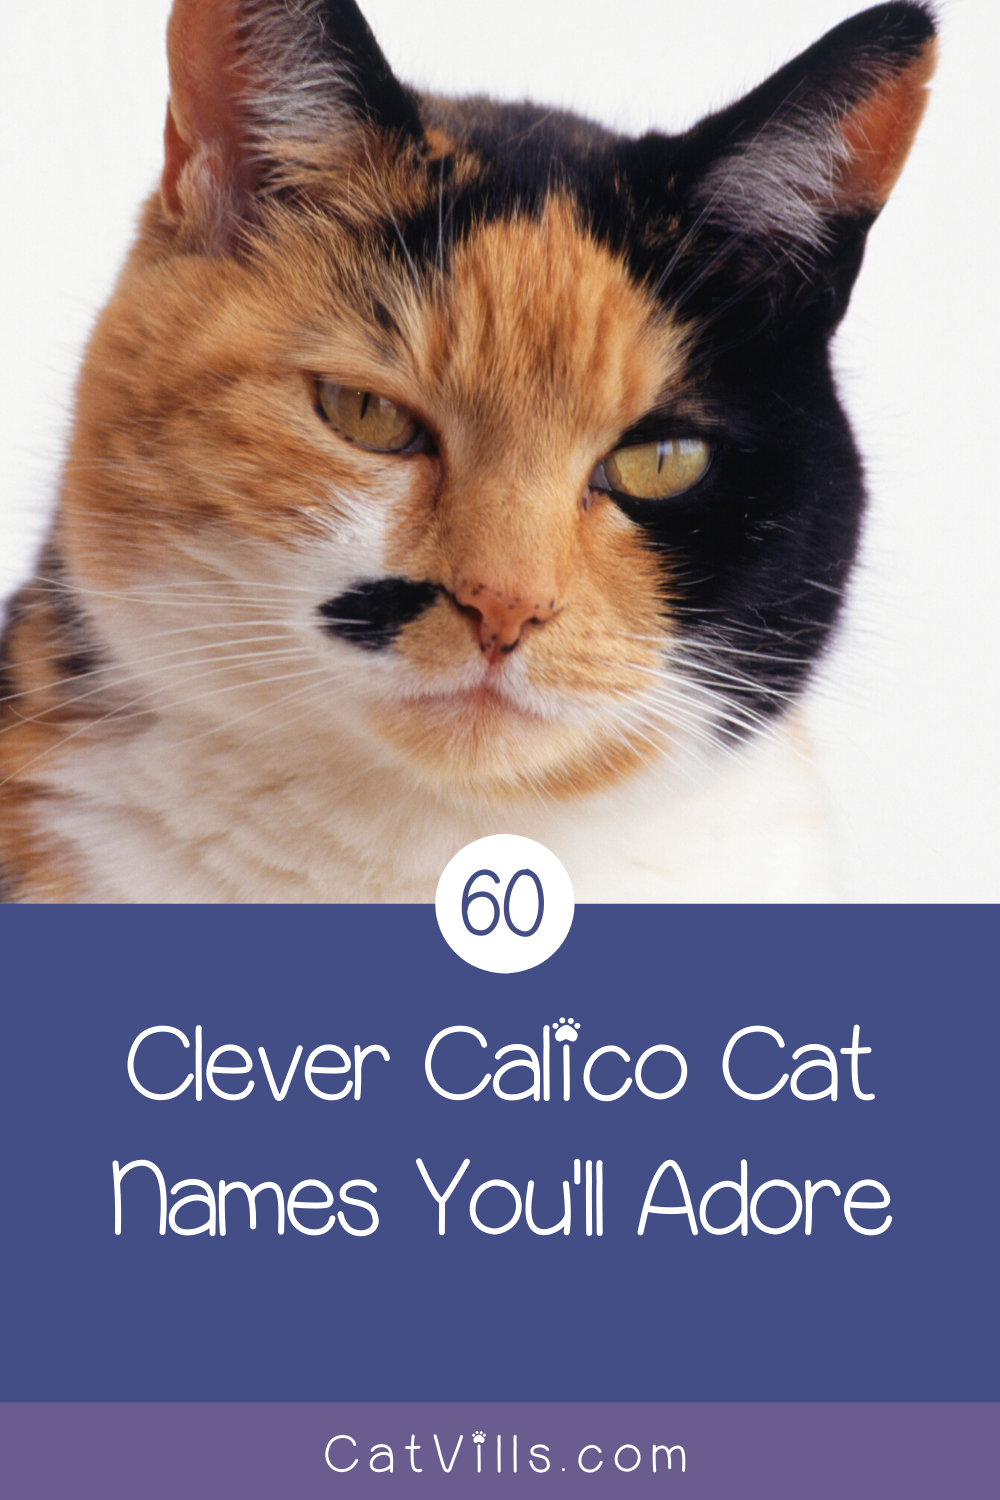 60 Clever Calico Cat Names You Ll Adore In 2020 Calico Cat Cat